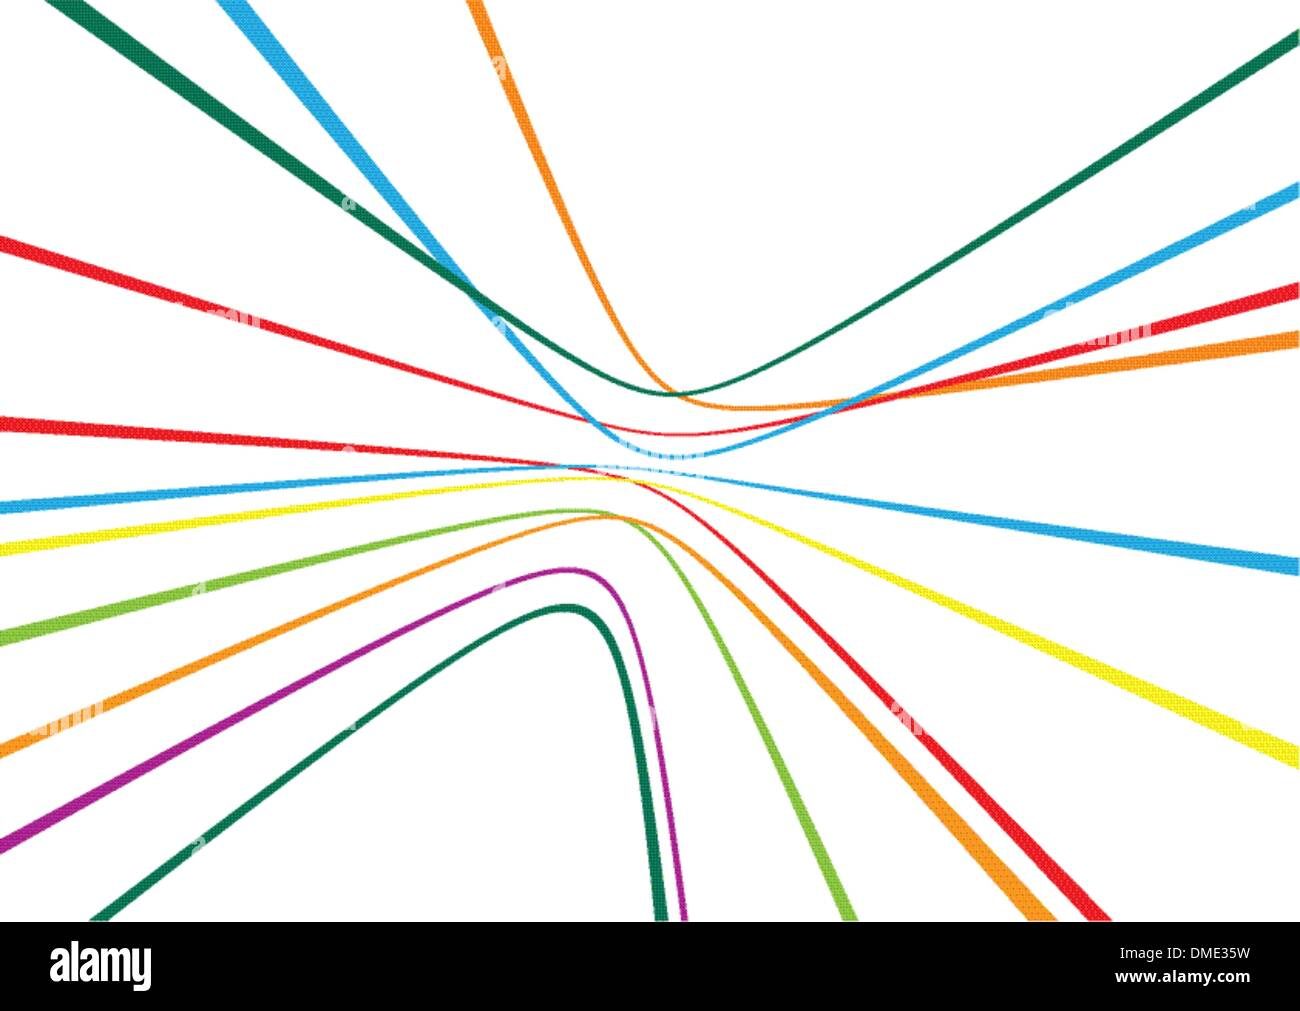 lines abstract pattern - Stock Image